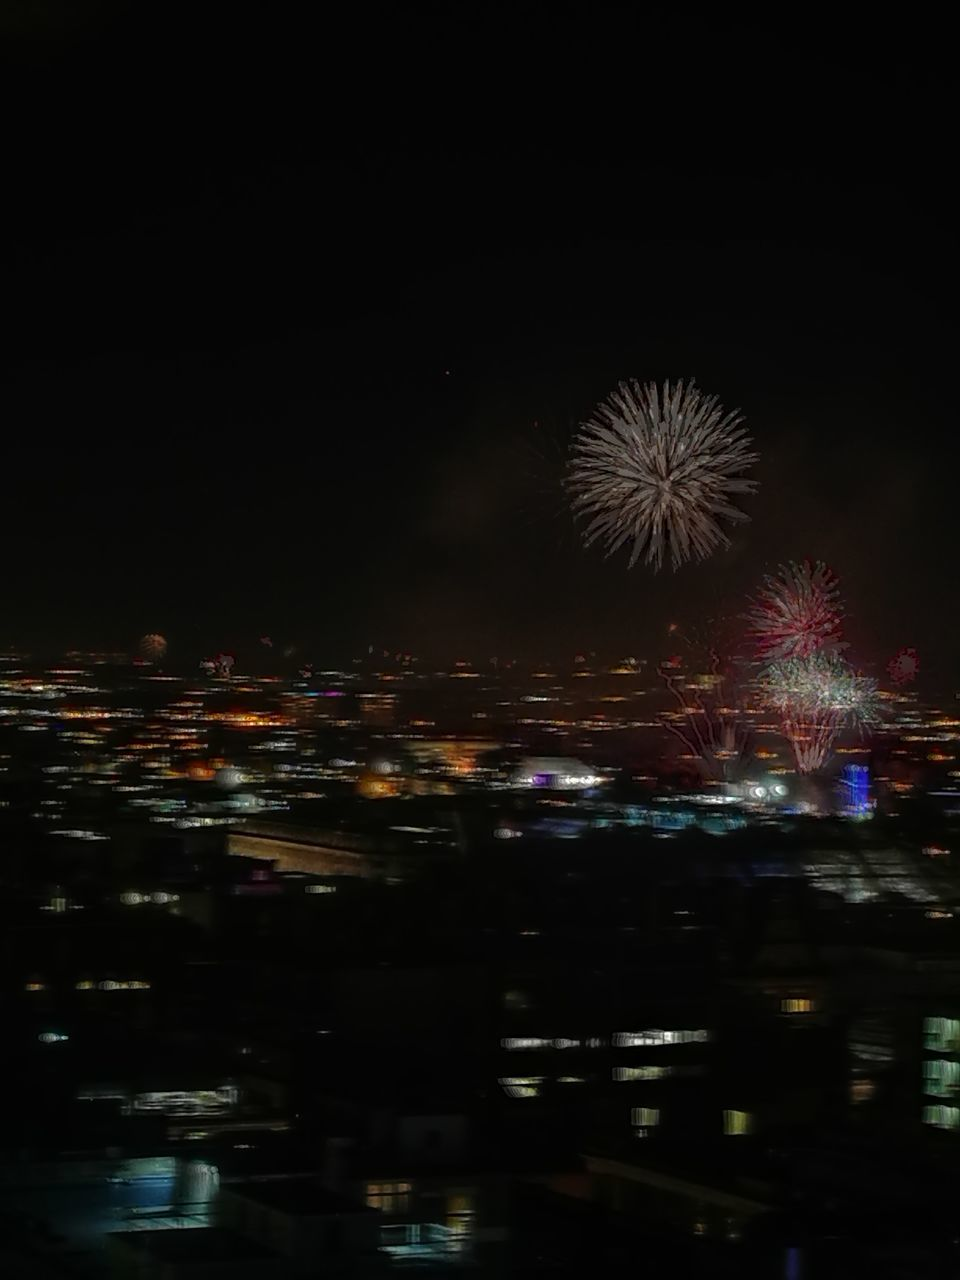 night, firework display, firework - man made object, exploding, celebration, illuminated, arts culture and entertainment, event, long exposure, motion, sky, no people, outdoors, firework, cityscape, building exterior, city